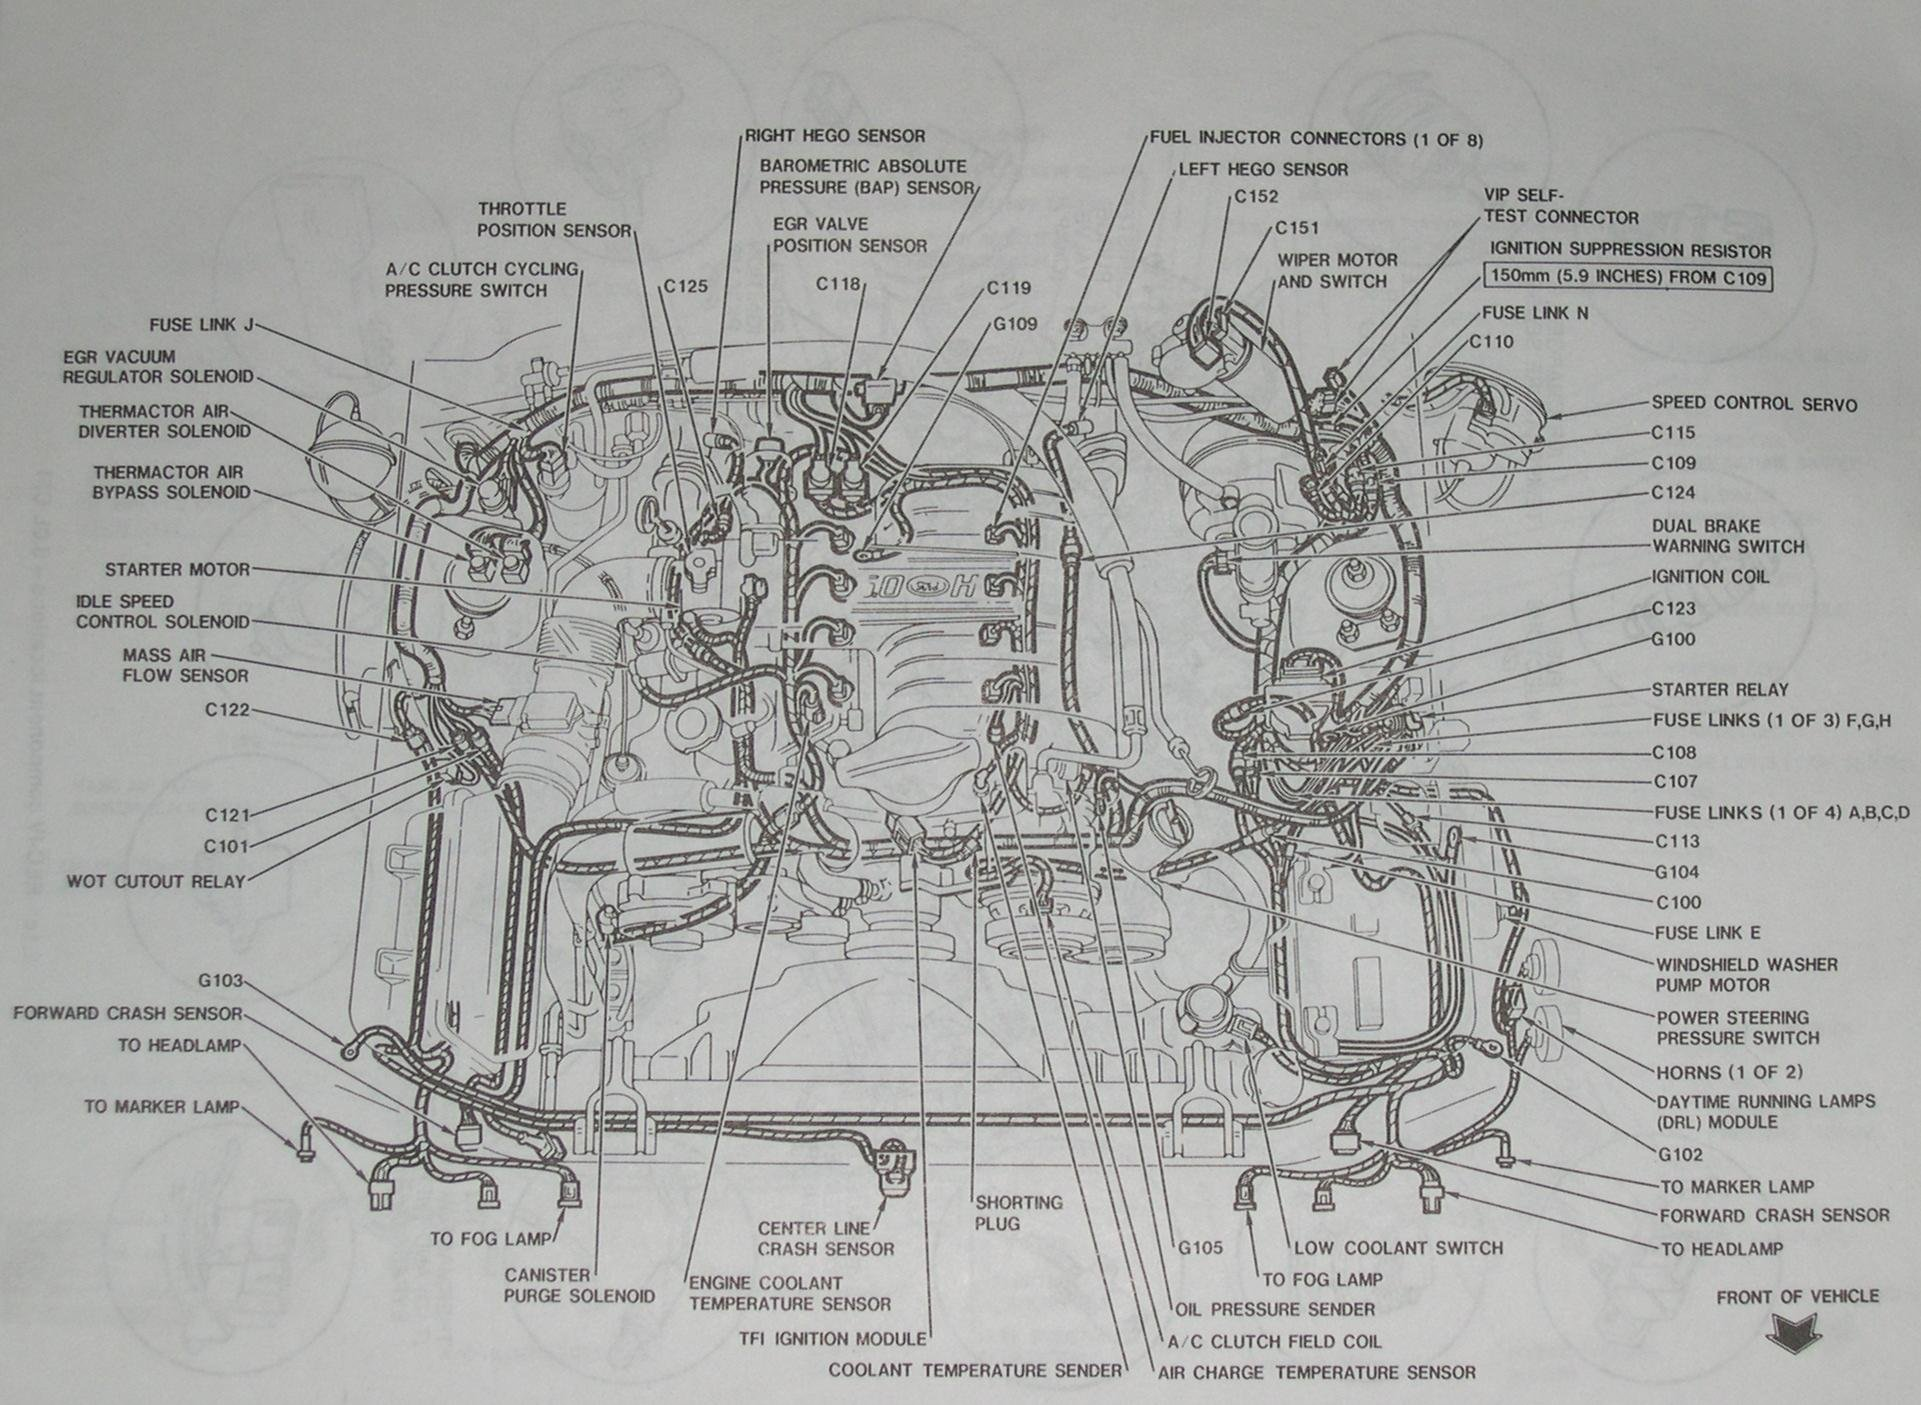 ford mustang shaker radio wiring diagram ford engine ford mustang shaker 500 radio wiring diagram ford engine wiring diagram 06